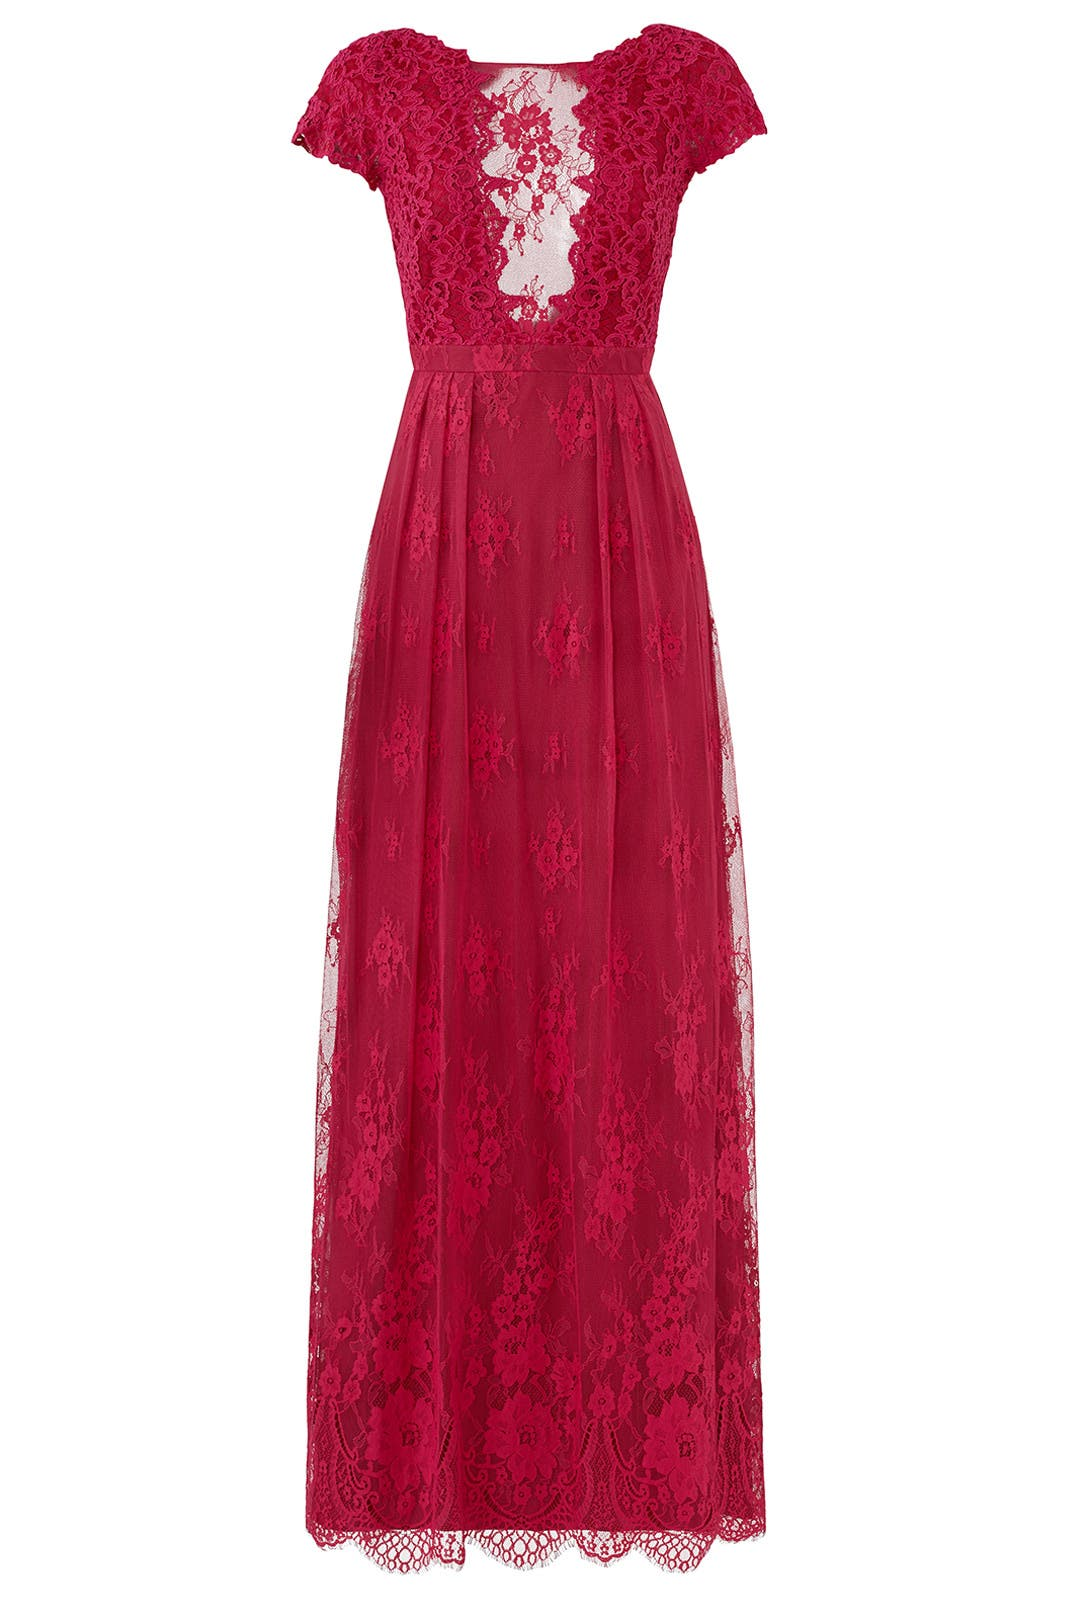 Berry Floral Lace Gown by ML Monique Lhuillier for $75 | Rent the ...